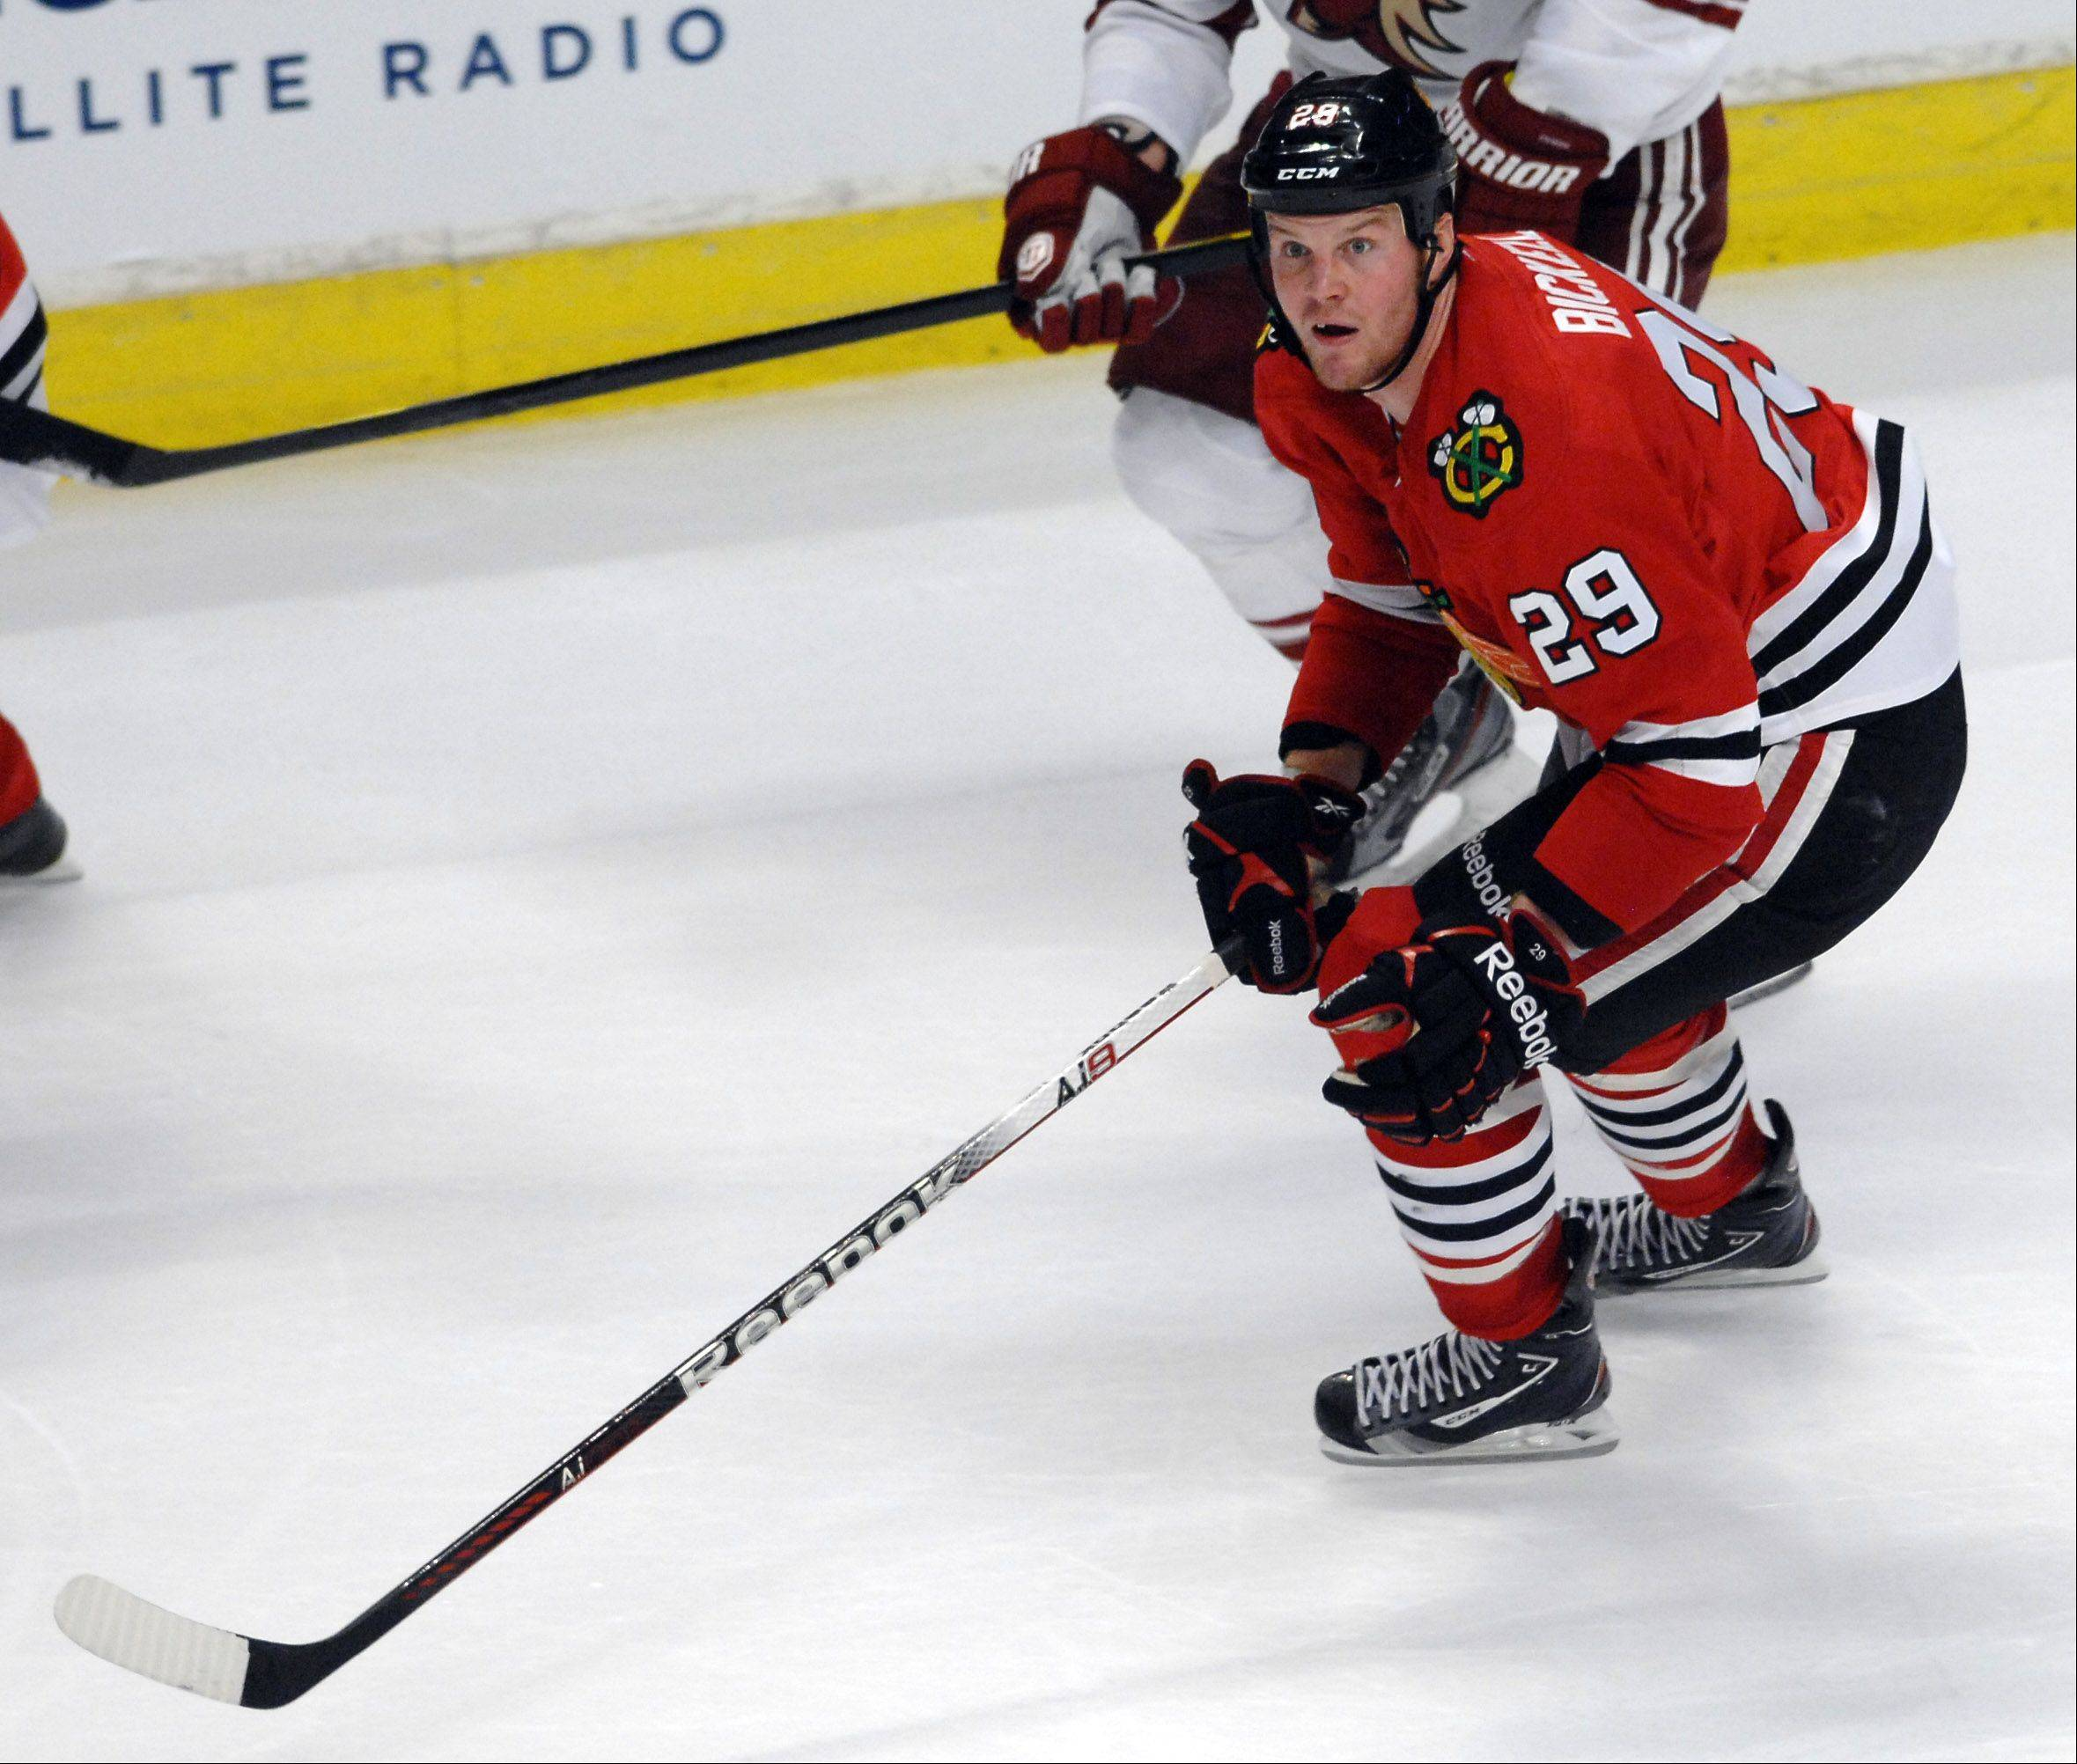 Blackhawks left wing Bryan Bickell scored on just 4.3 percent of his shots last season for the Blackhawks.